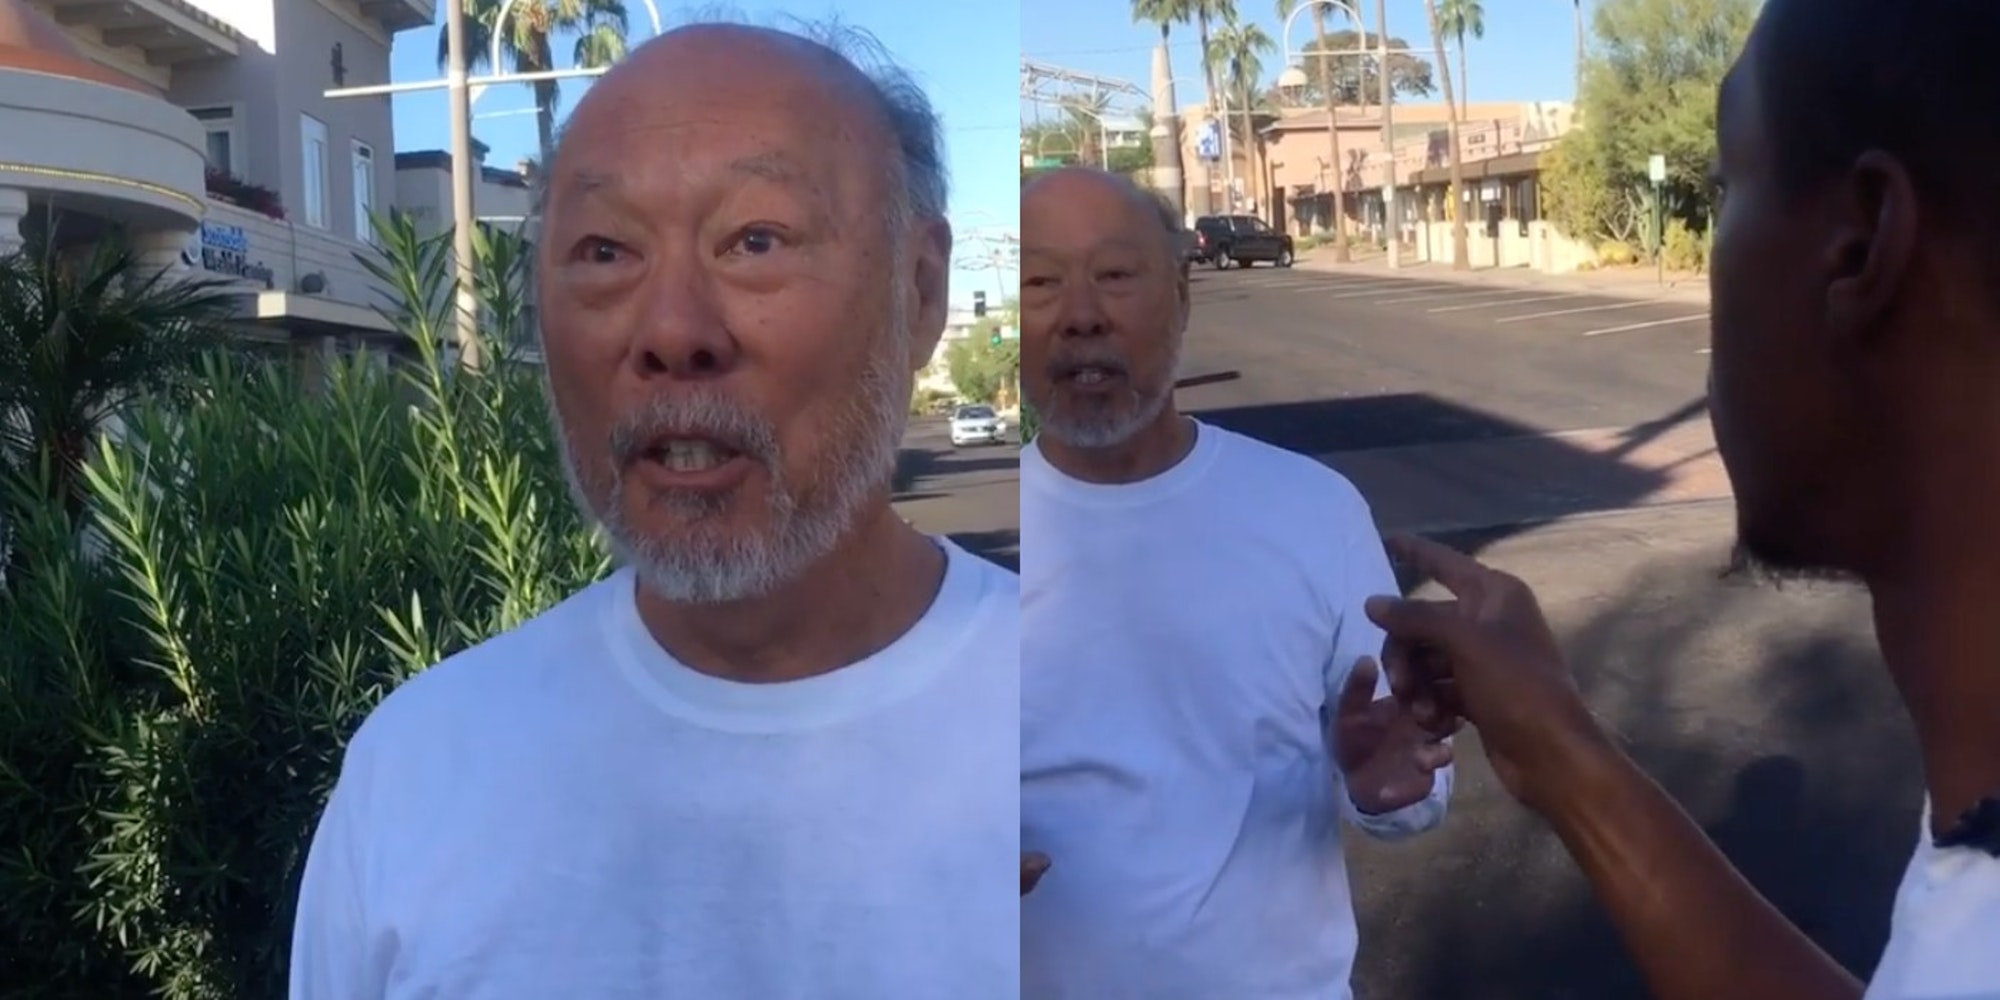 Paul Ng told a Black man that his living location is a no-[N-word] zone